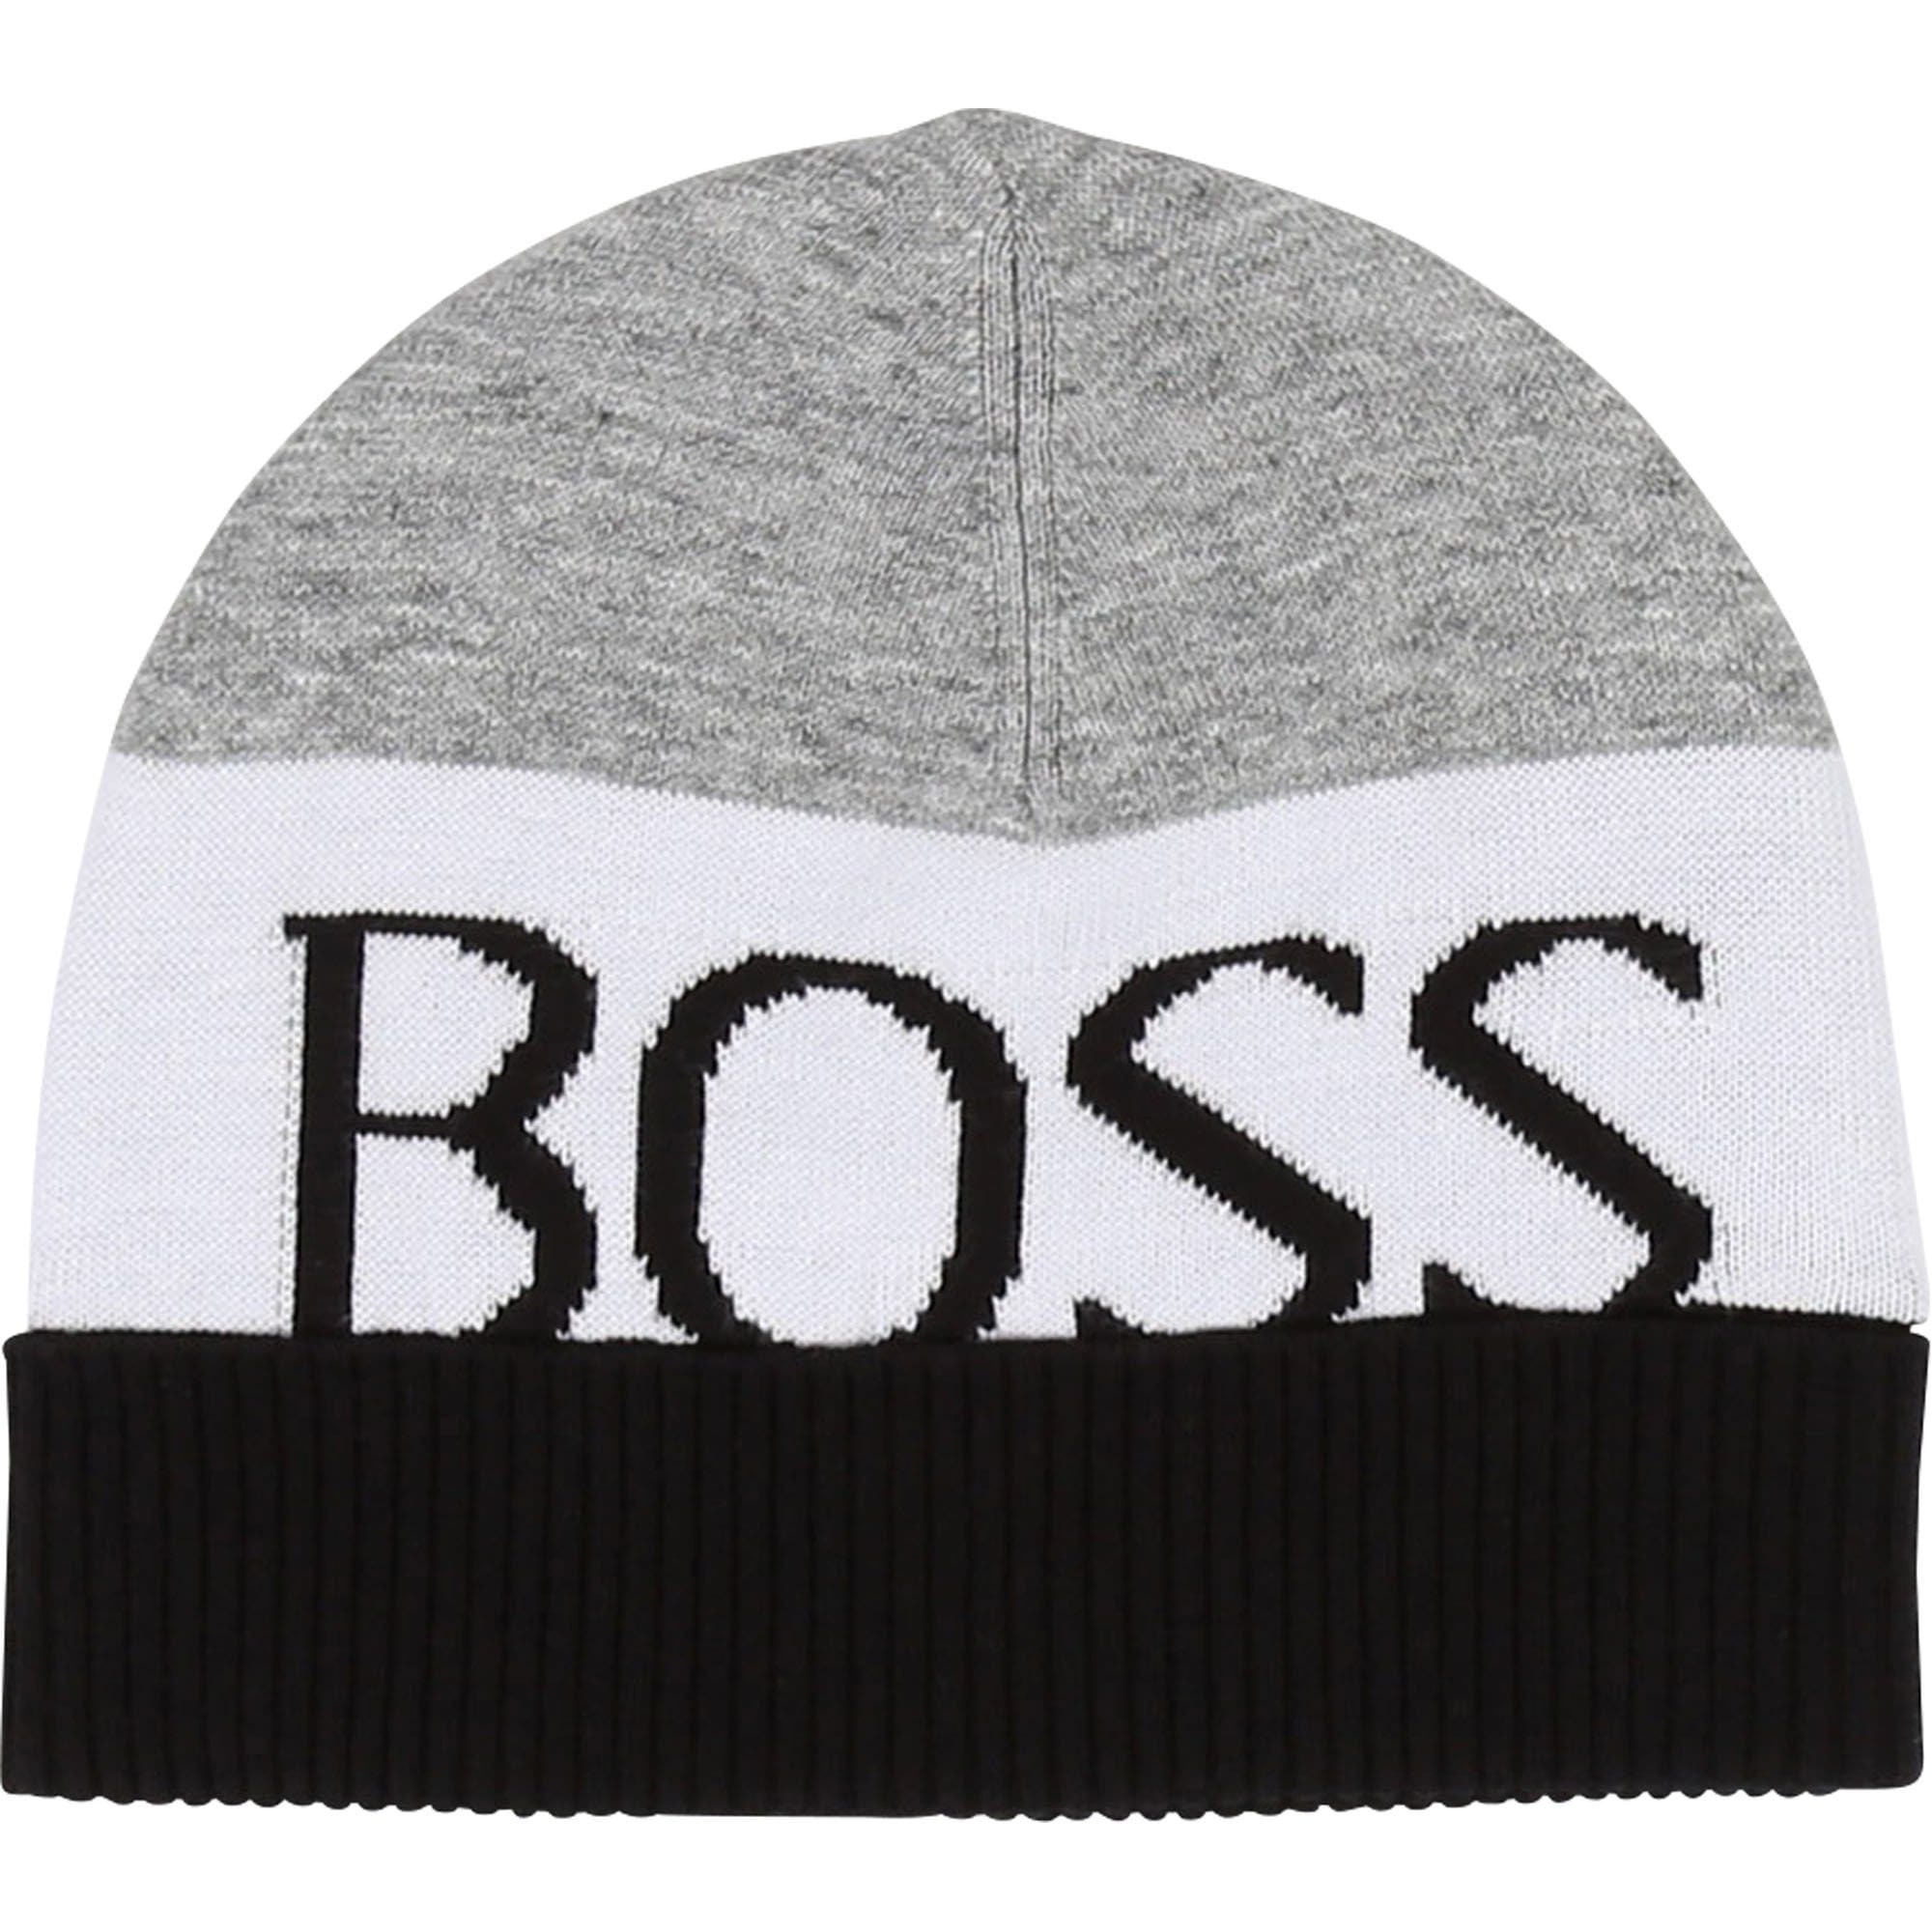 Hugo Boss Beanie Black J21193/09B